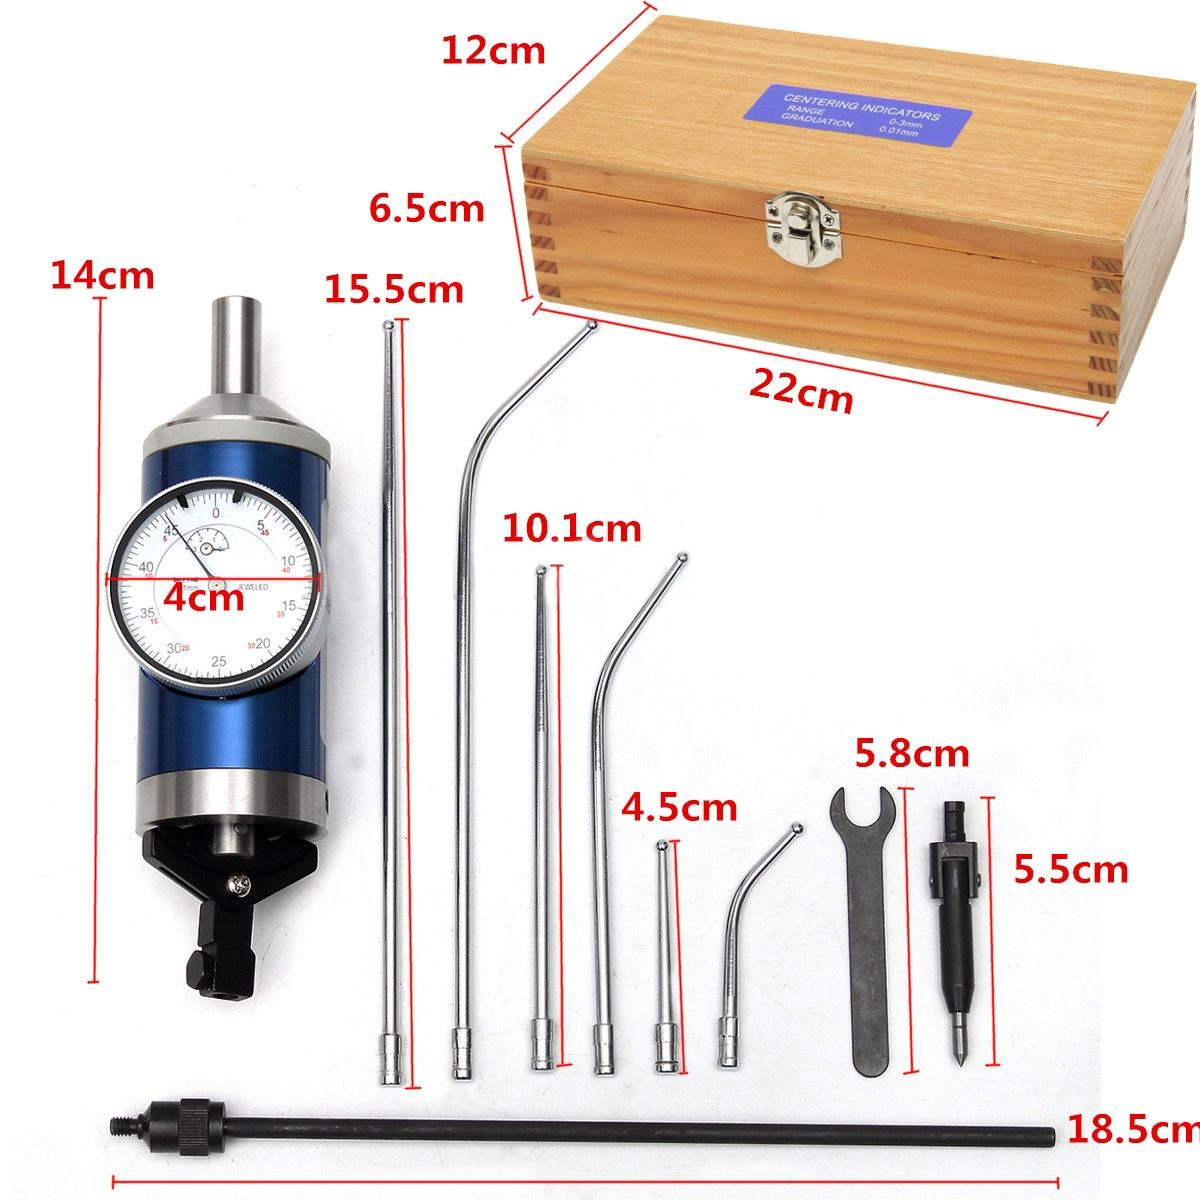 1Set Coaxial Centering Dial Test Indicator Set 0-3mm Center Finder Milling Tool 0.01mm Accuracy with Wooden Box